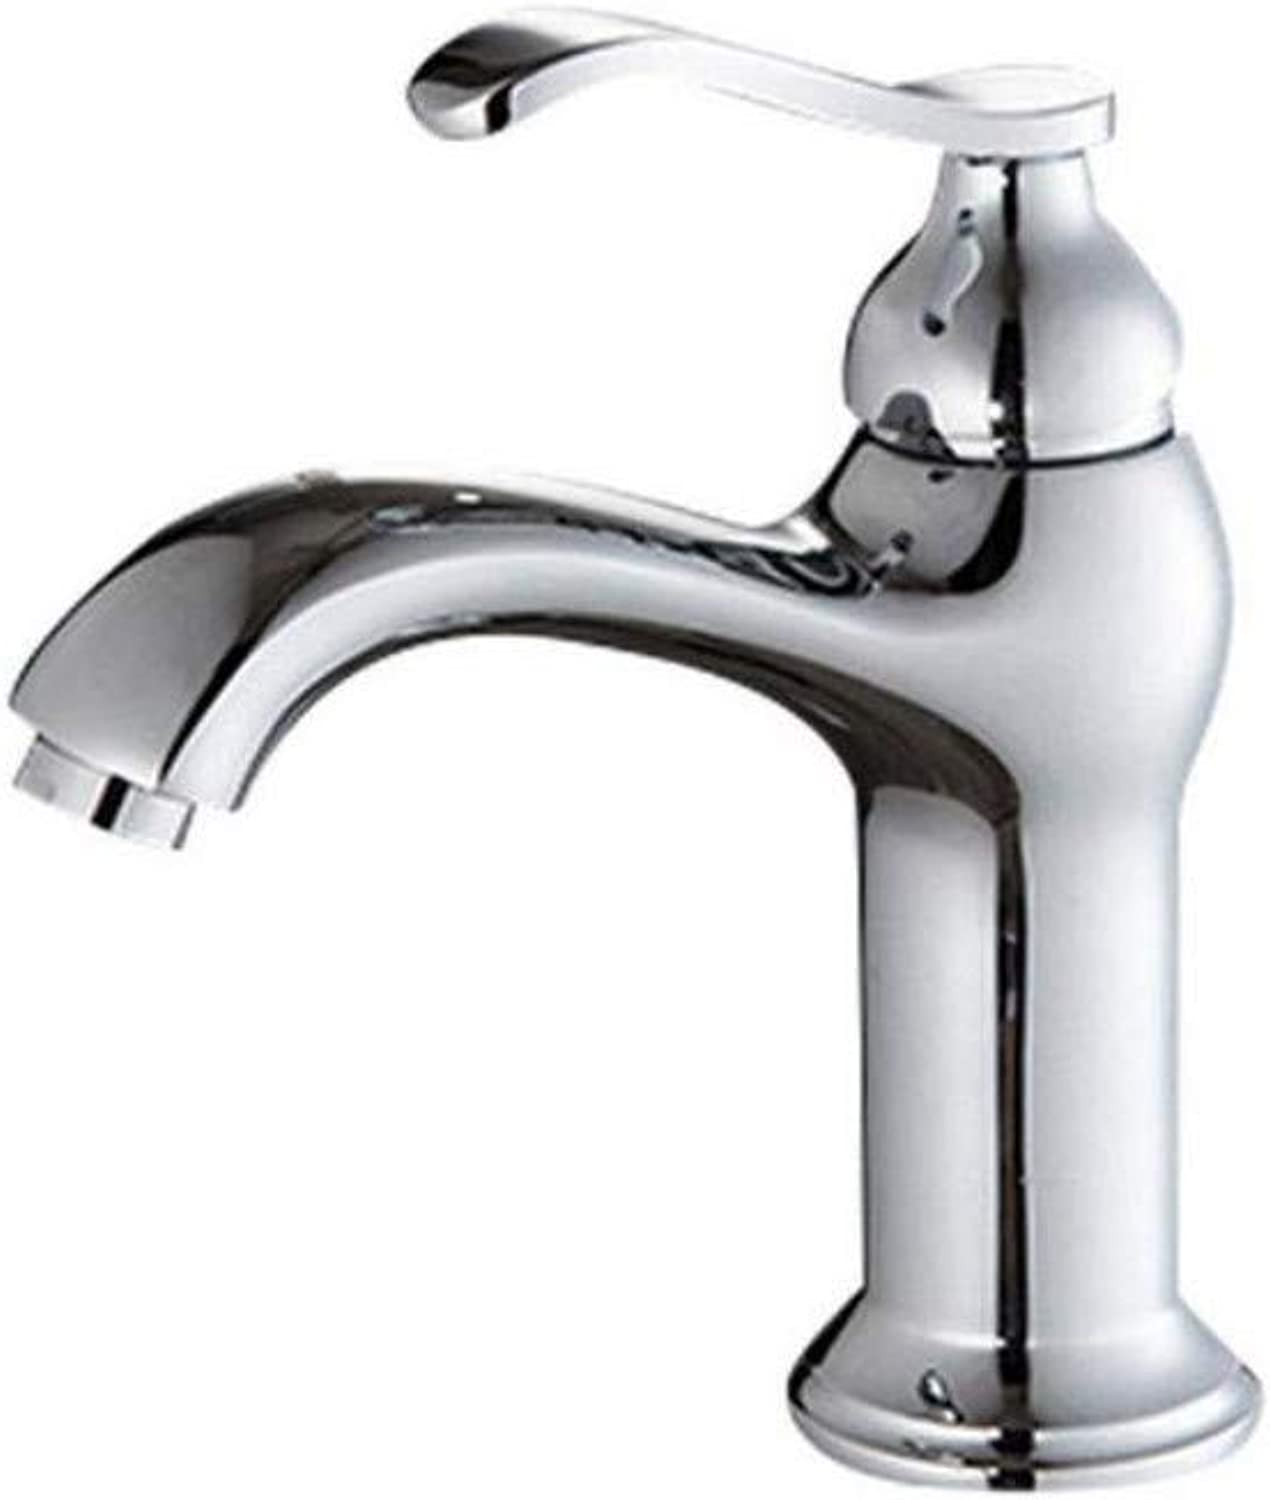 Taps Kitchen Sink Professional Sink Mixer Tap Kitchen Faucet Solid Brass Faucets Kitchen Dish Washing Basin